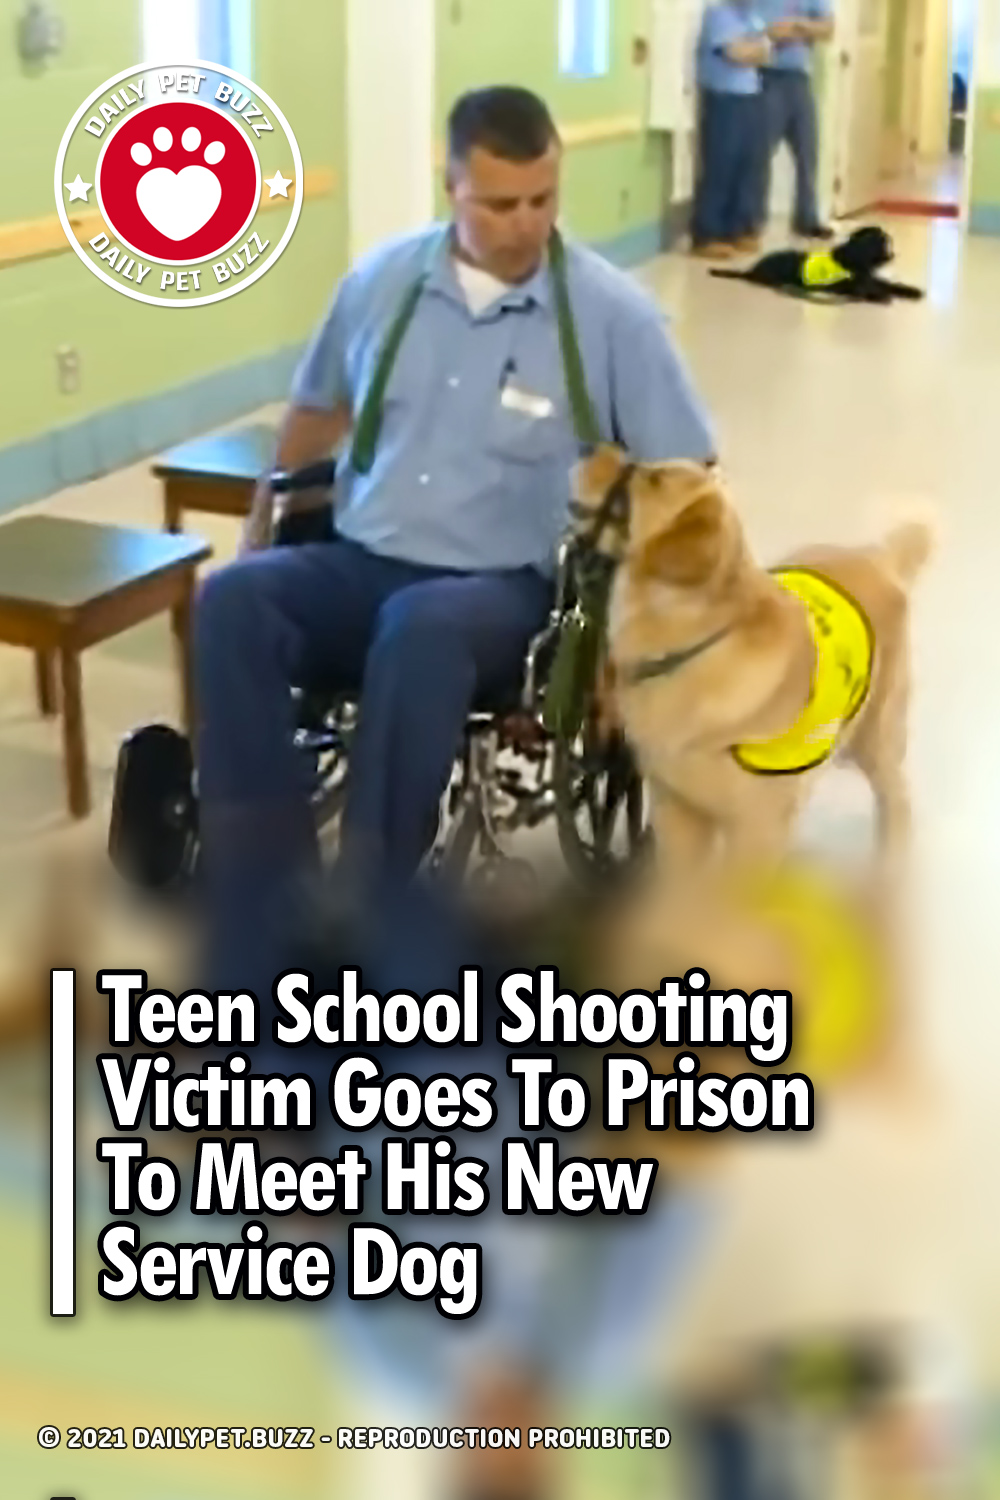 Teen School Shooting Victim Goes To Prison To Meet His New Service Dog